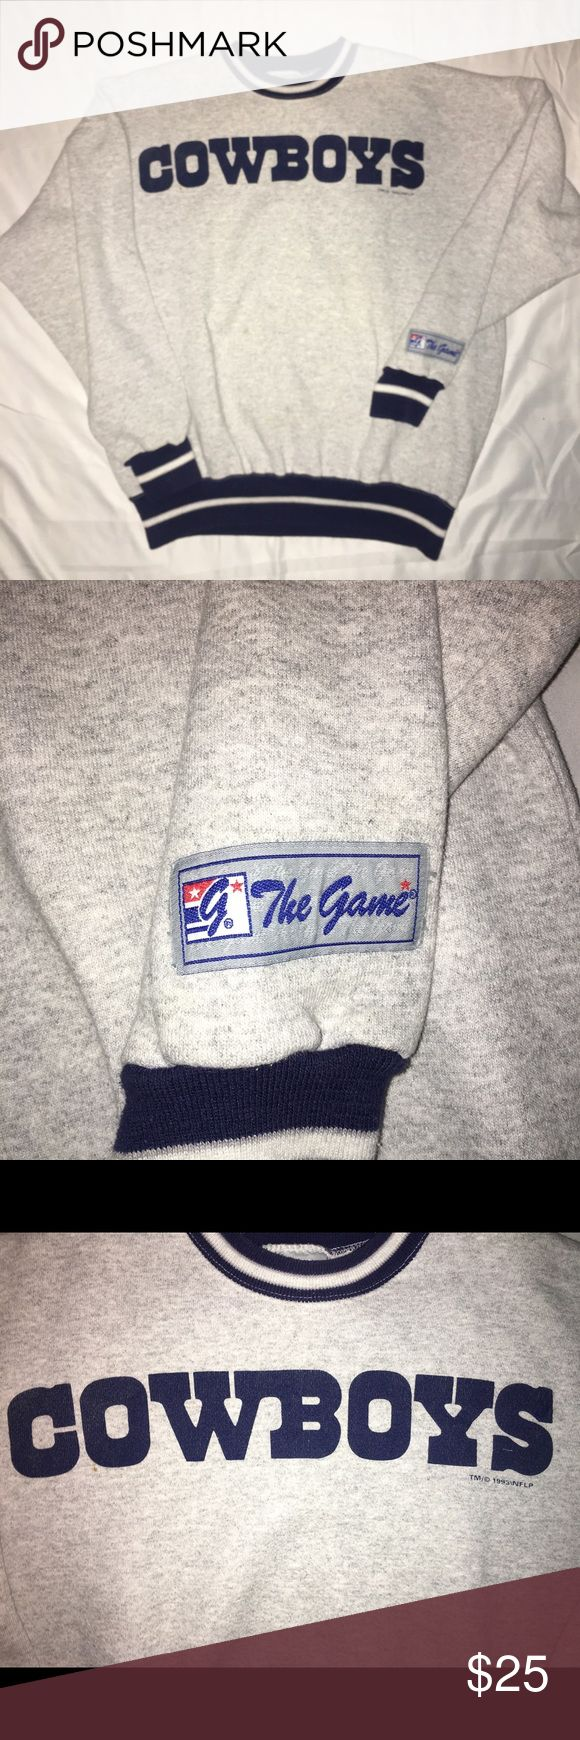 vintage 1993 Dallas Cowboys NFL football crewneck 1993 cowboys the game crewneck  size XL  super clean  follow on the gram @pa_soleking.610  i am always buying shoes please message me or dm me on the gram  all buyers who do not pay for their item will be blocked from my page   please make sure to look at all pictures before purchasing   if you want to offer make sure you can pay that offer or don't bother offering at all   payment is due within 3 days or unpaid case will be automatically…